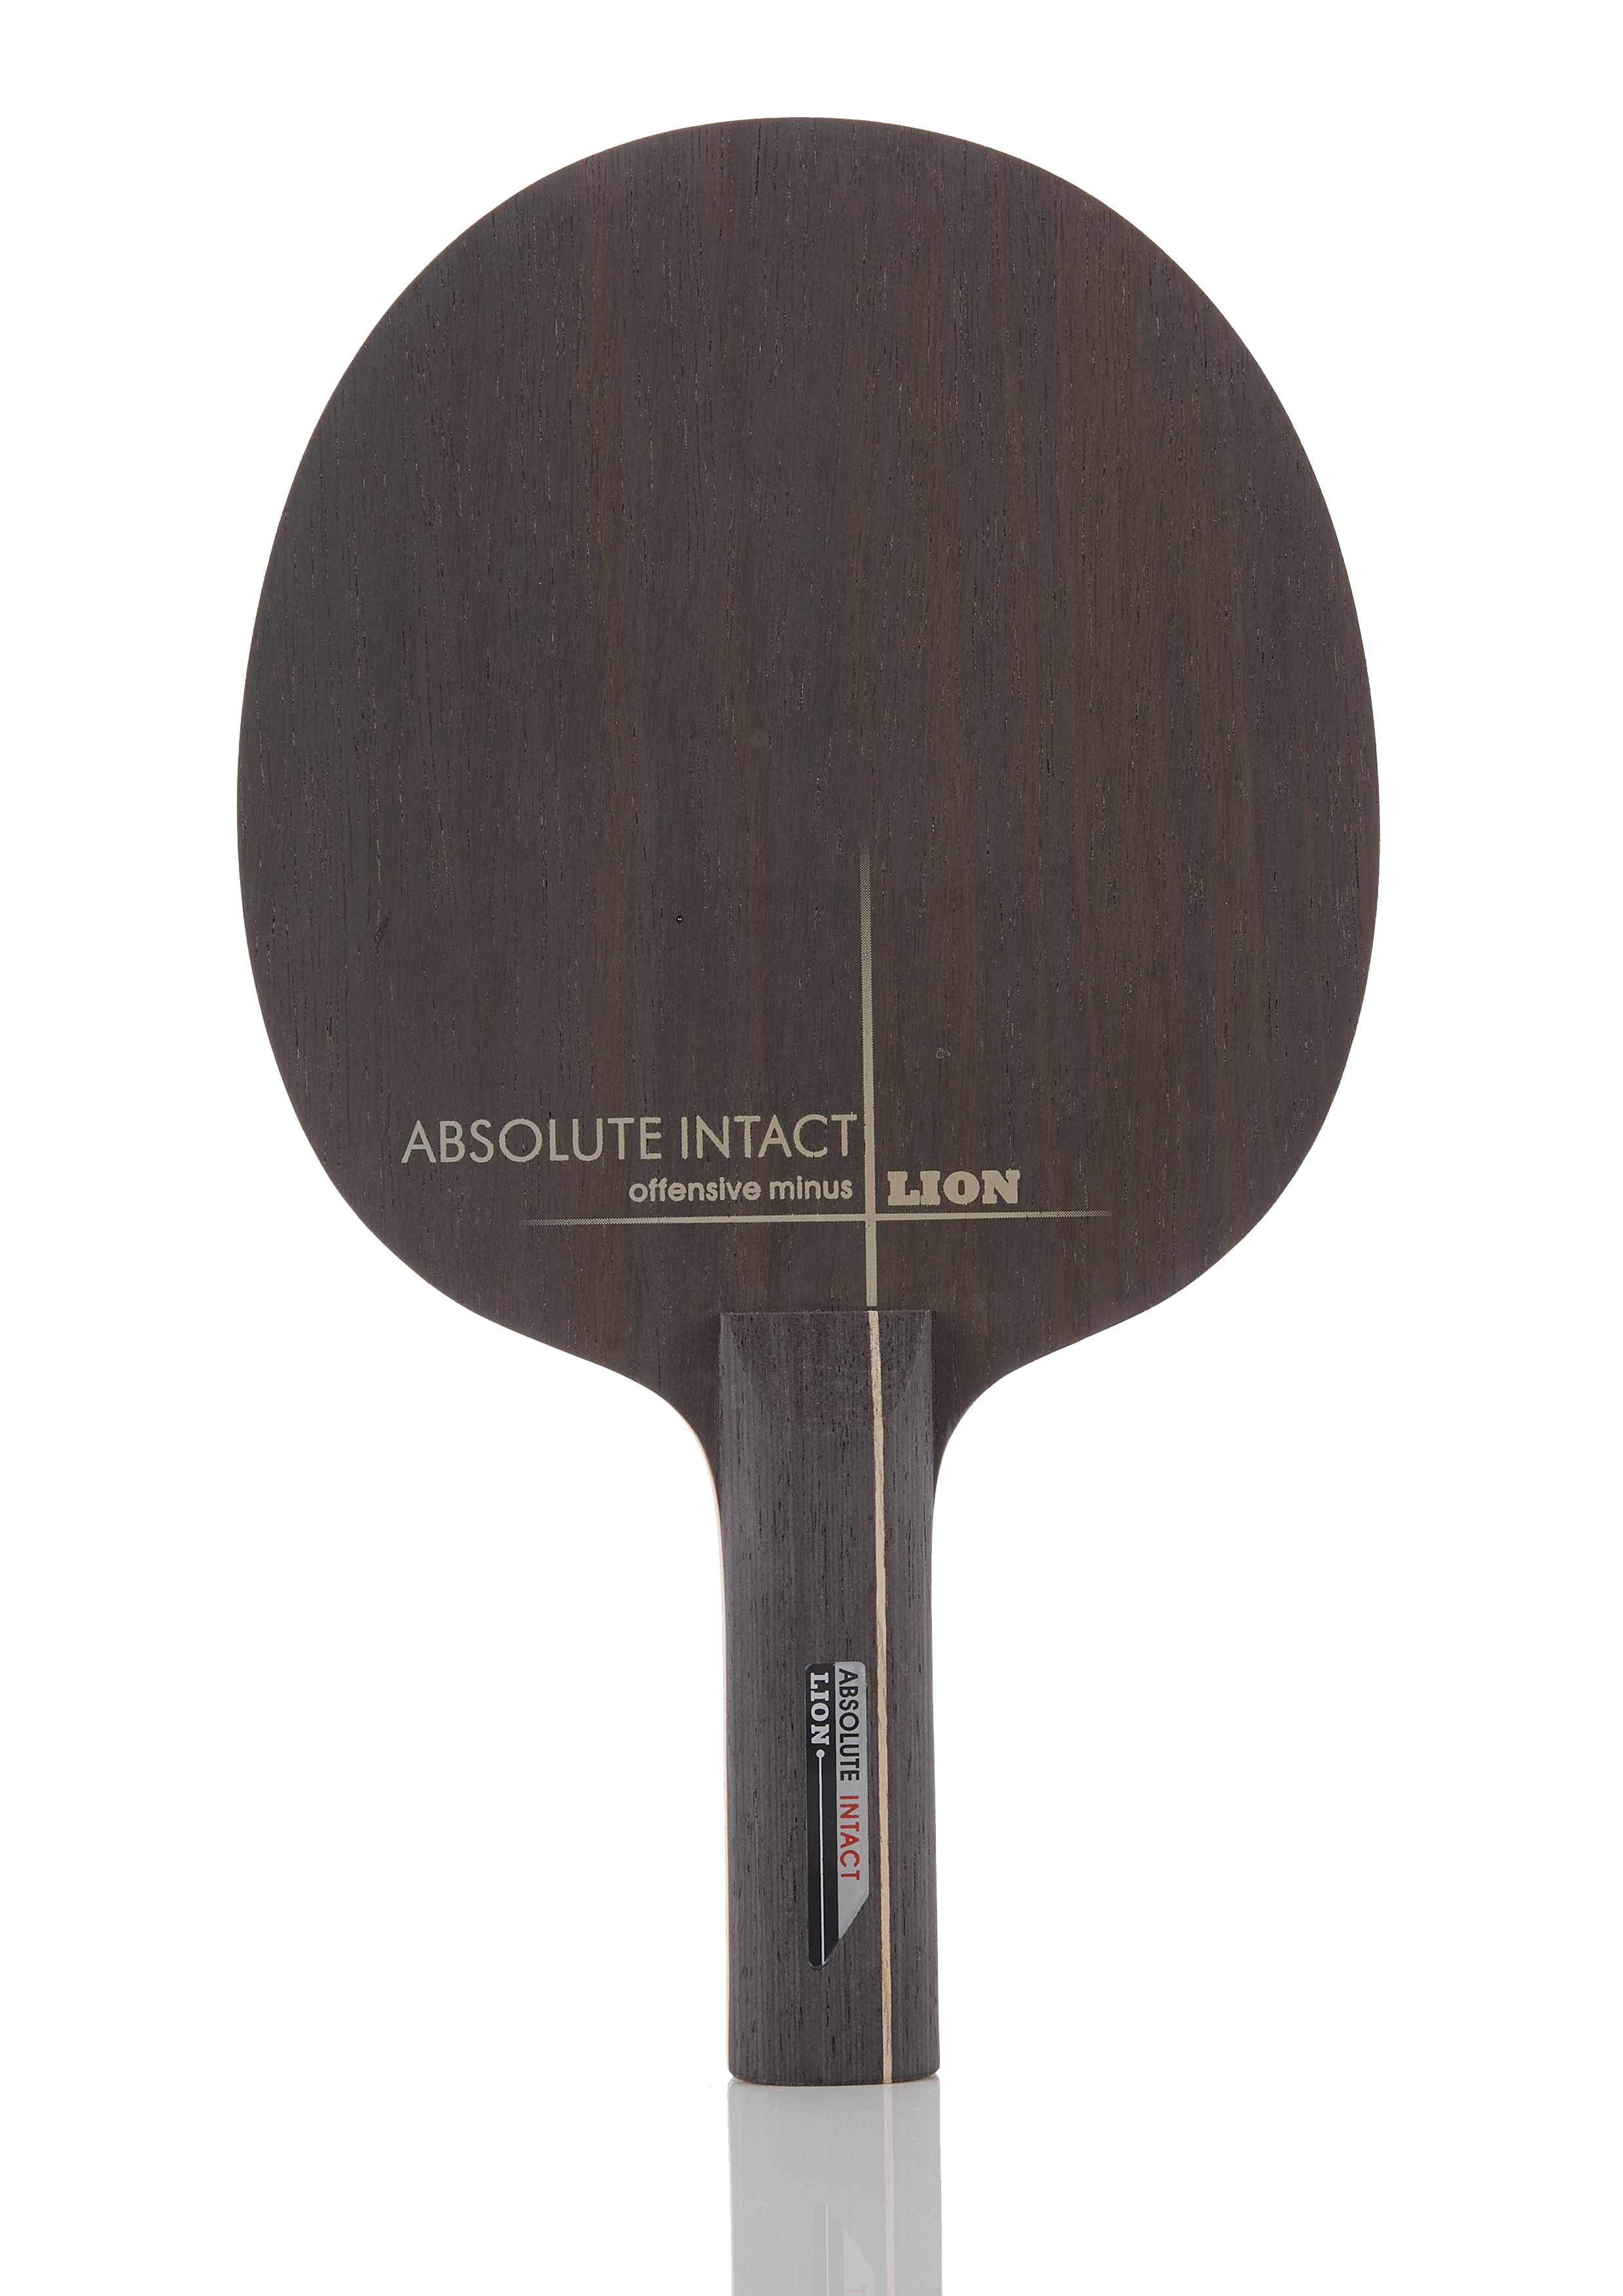 ABSOLUTE INTACT OFF-